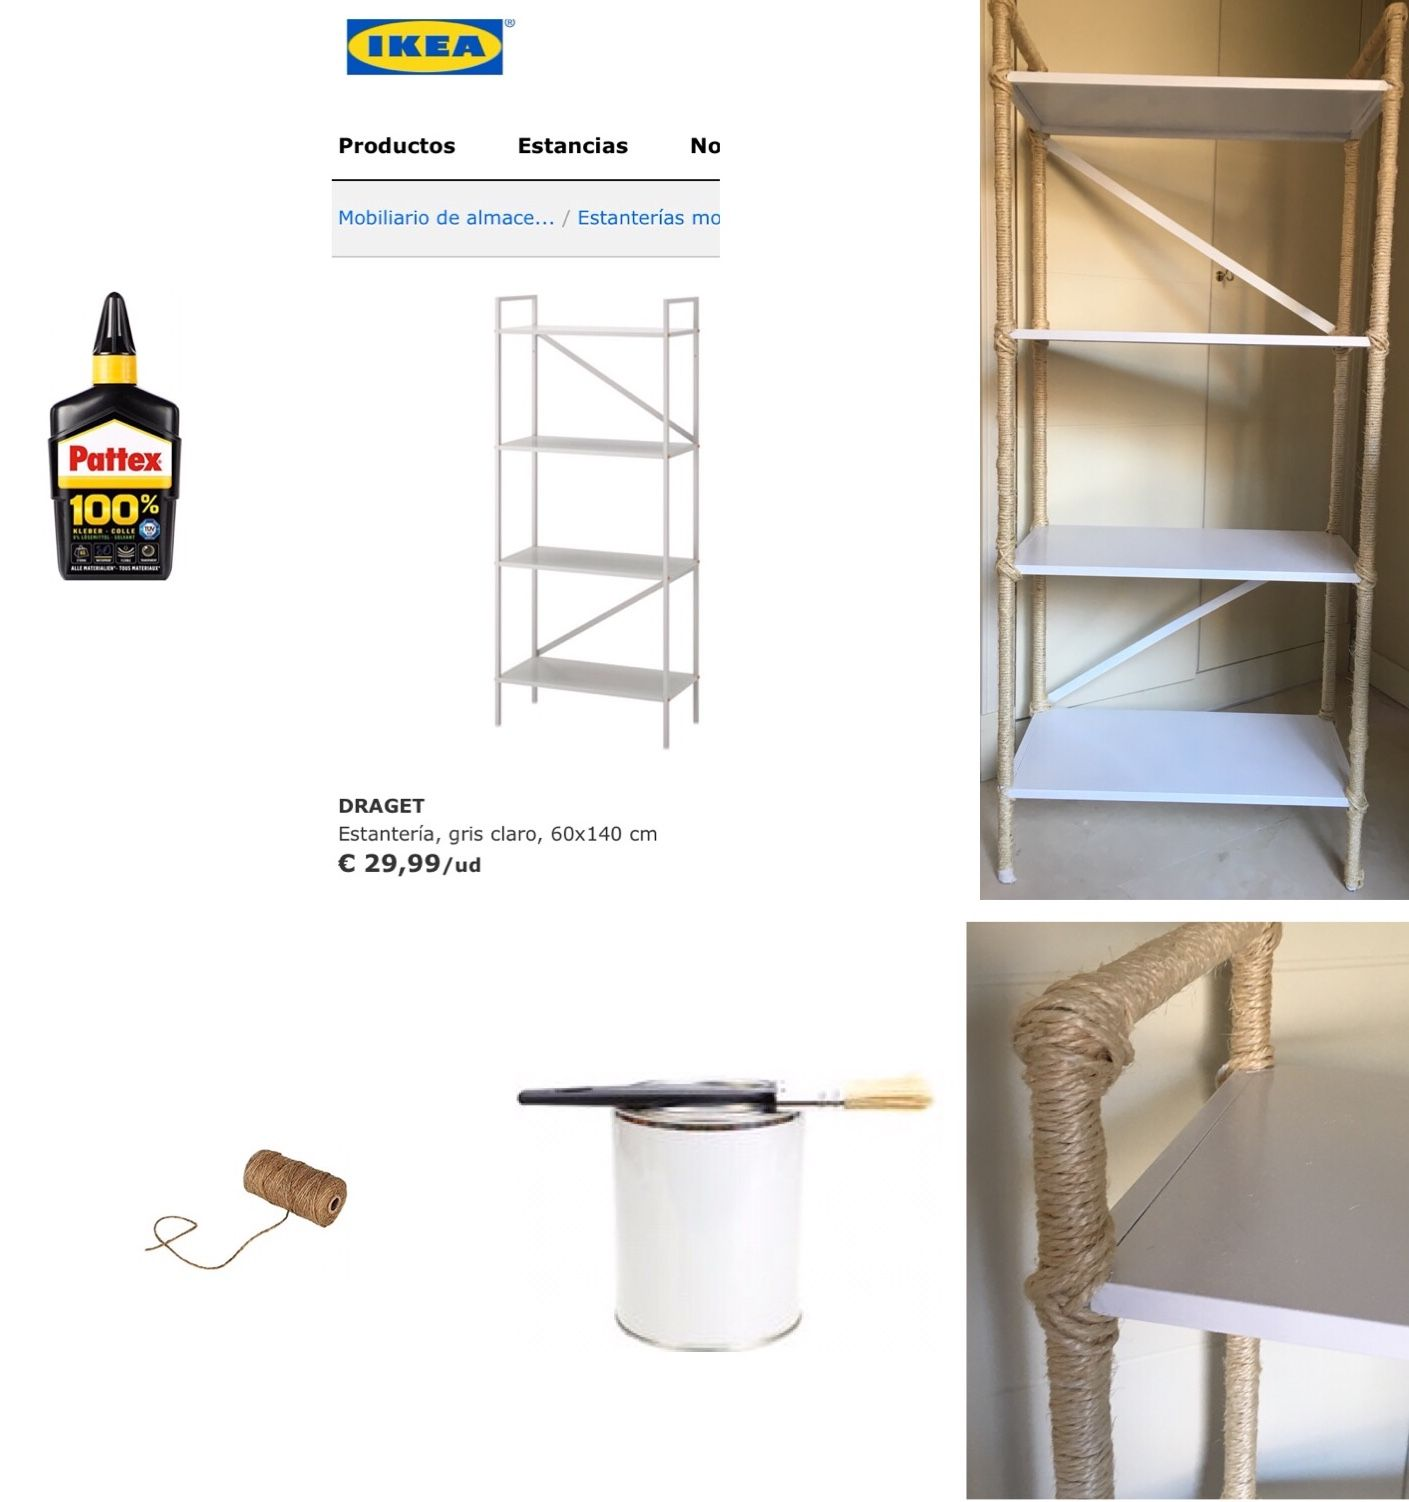 DIY Shelving Unit Update Project Difficulty Level: 1/10